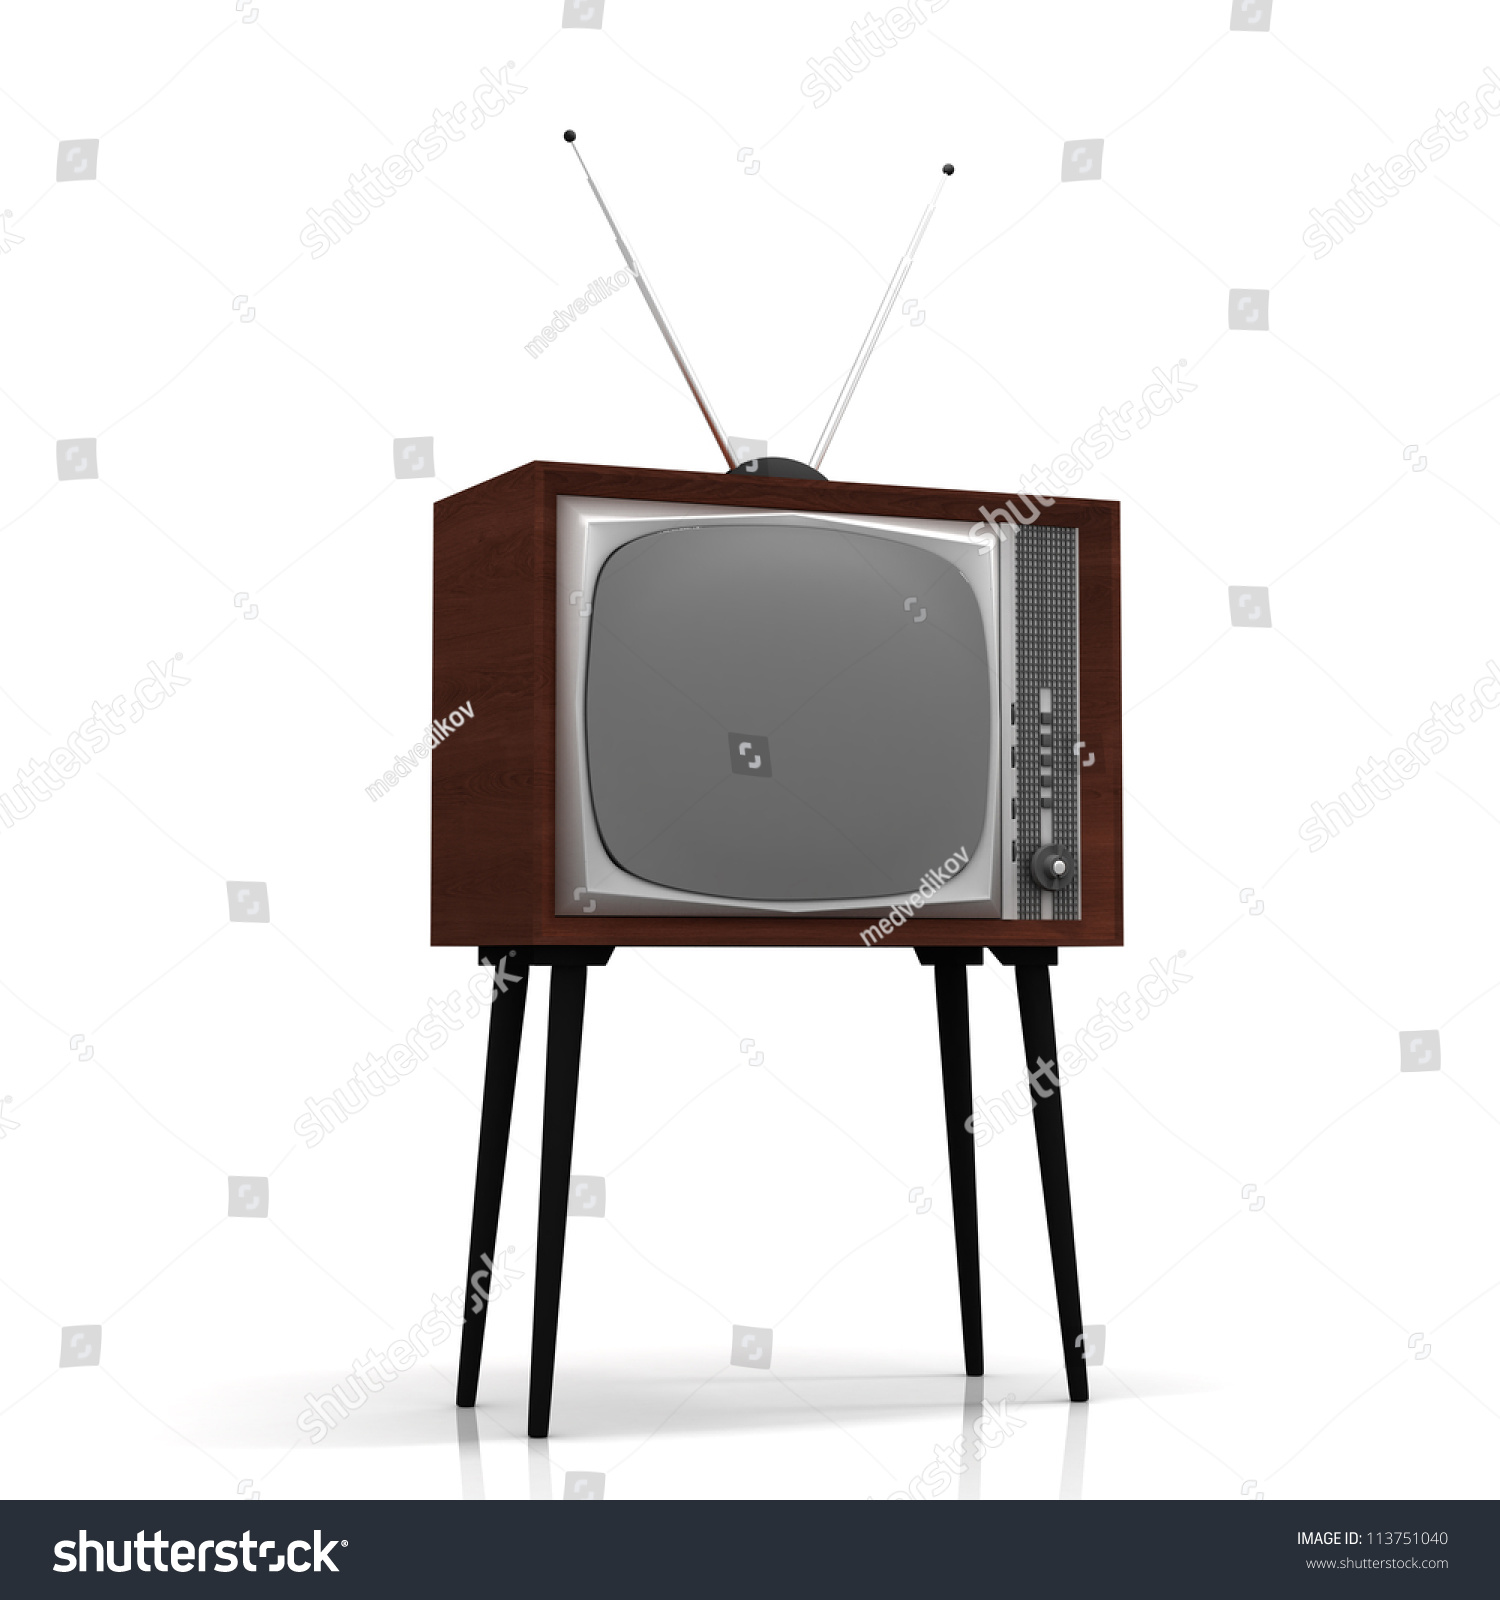 Royalty-free Old TV on legs with antenna #113751040 Stock Photo ...